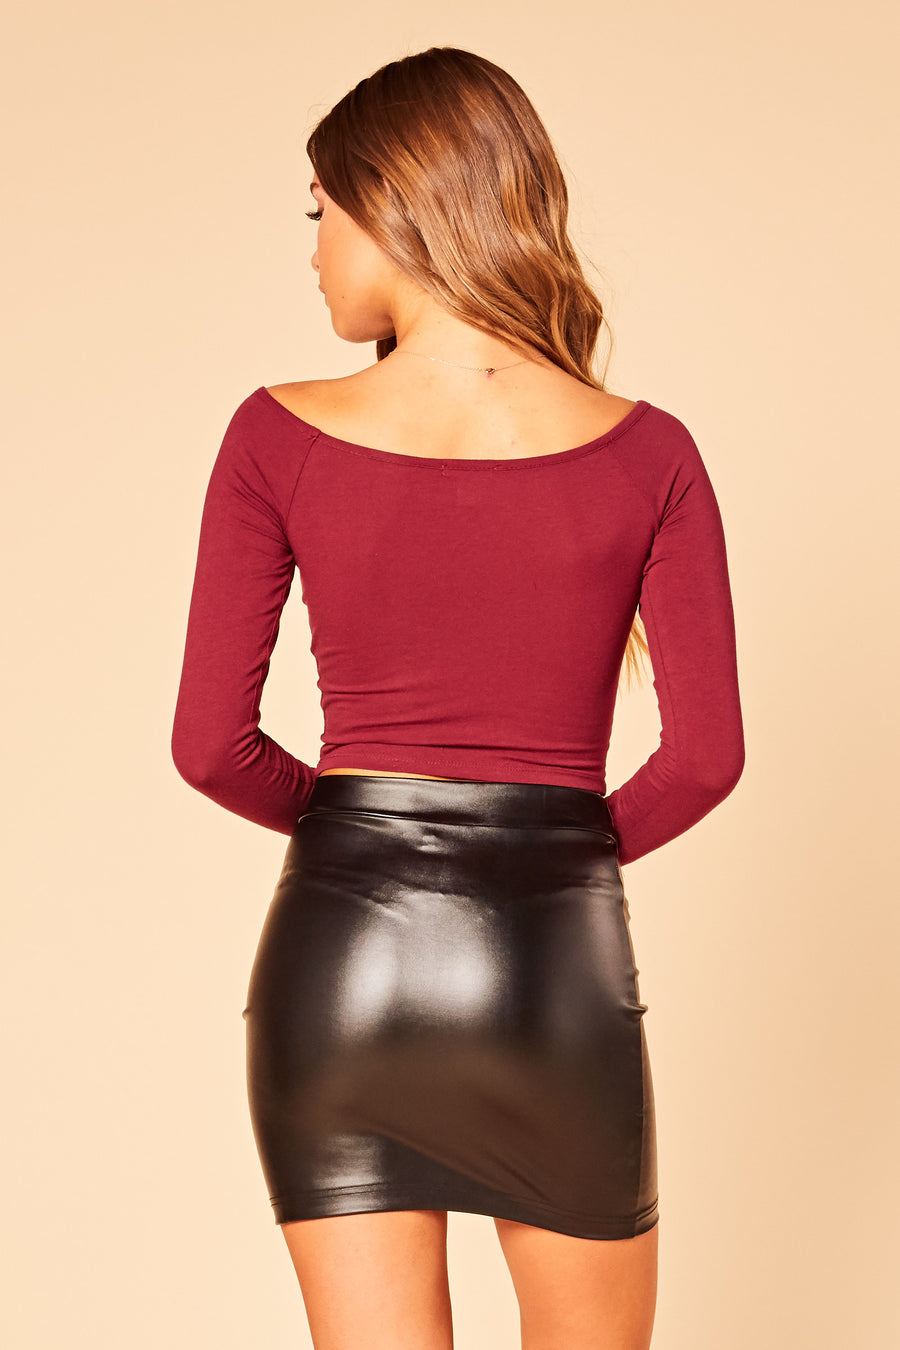 Catina Crop Top - HoneyBum